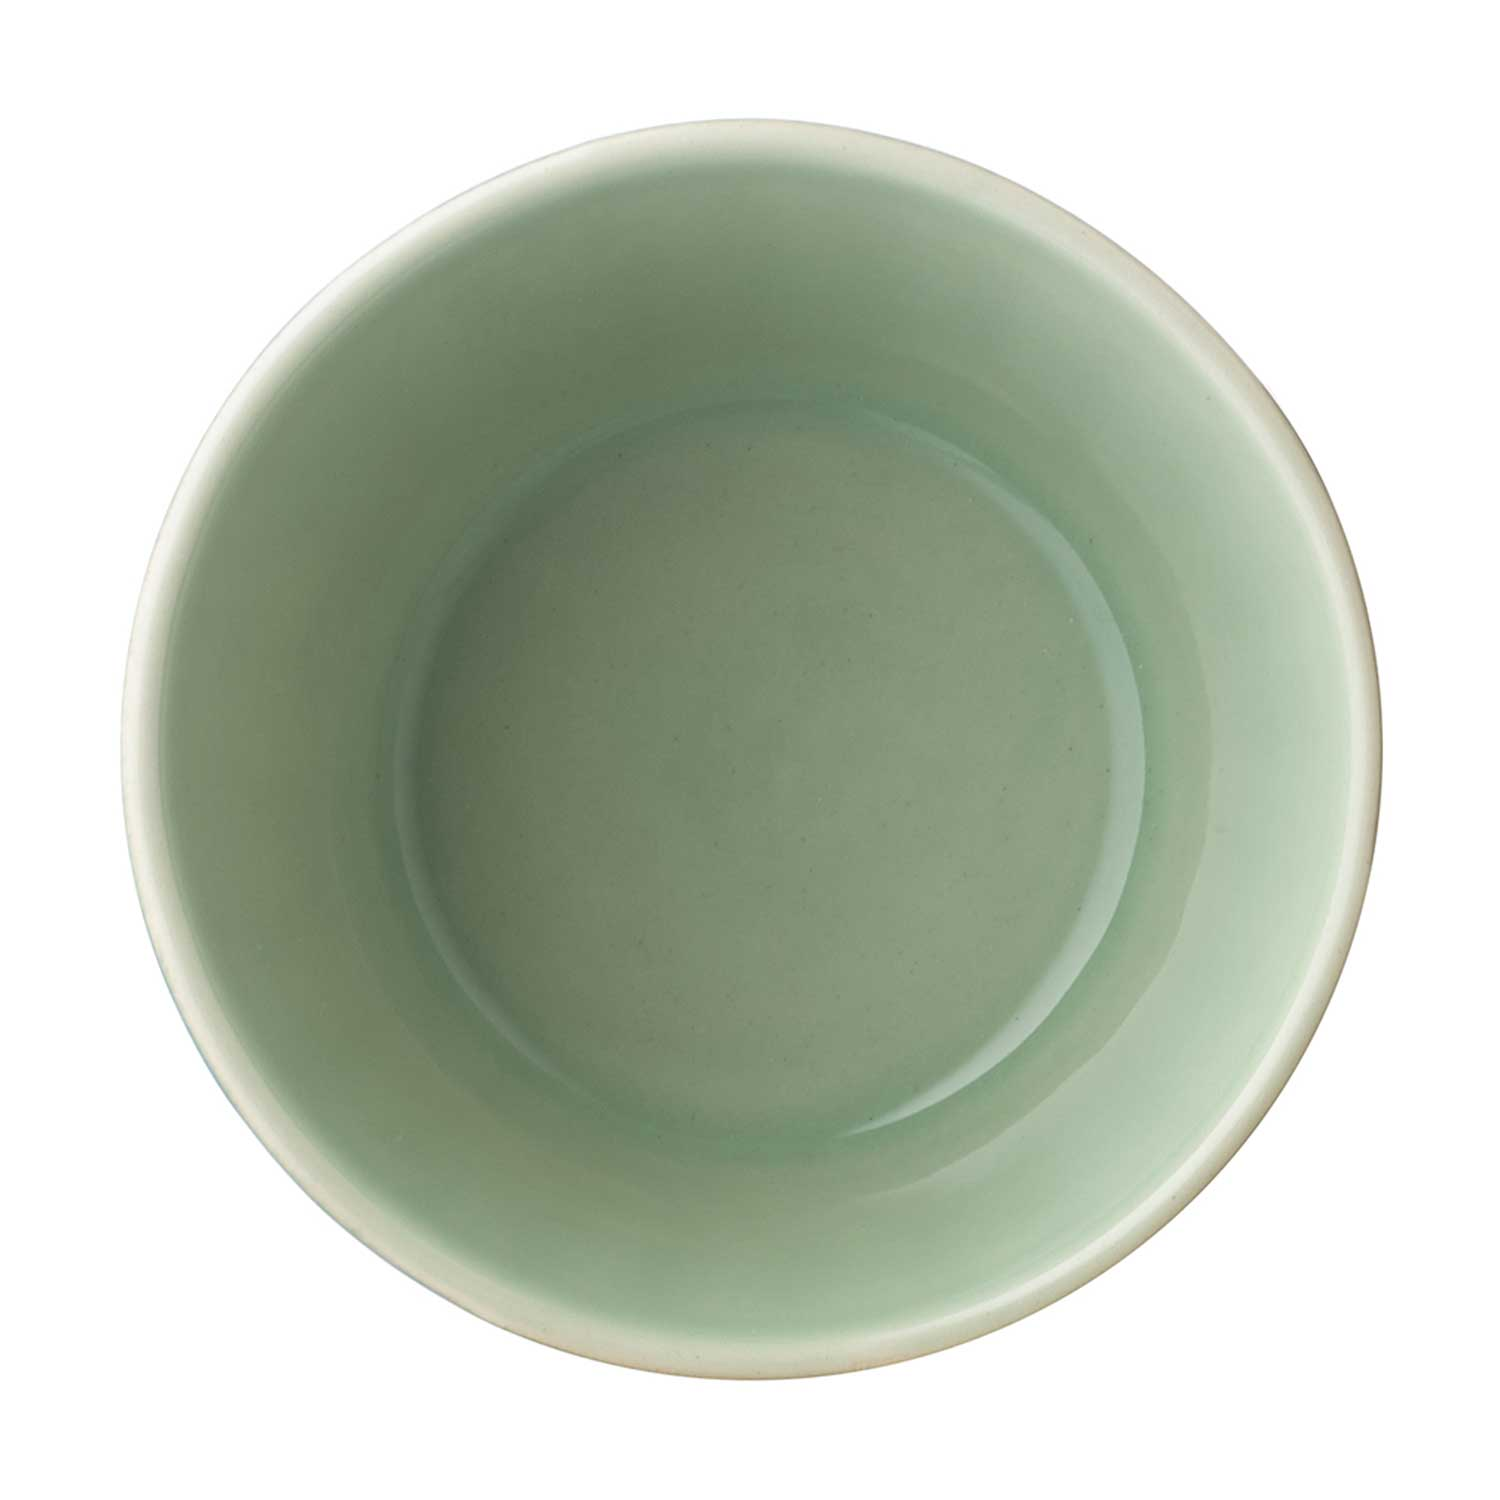 Rice / Miso Bowl With Lid - Lontar Collection